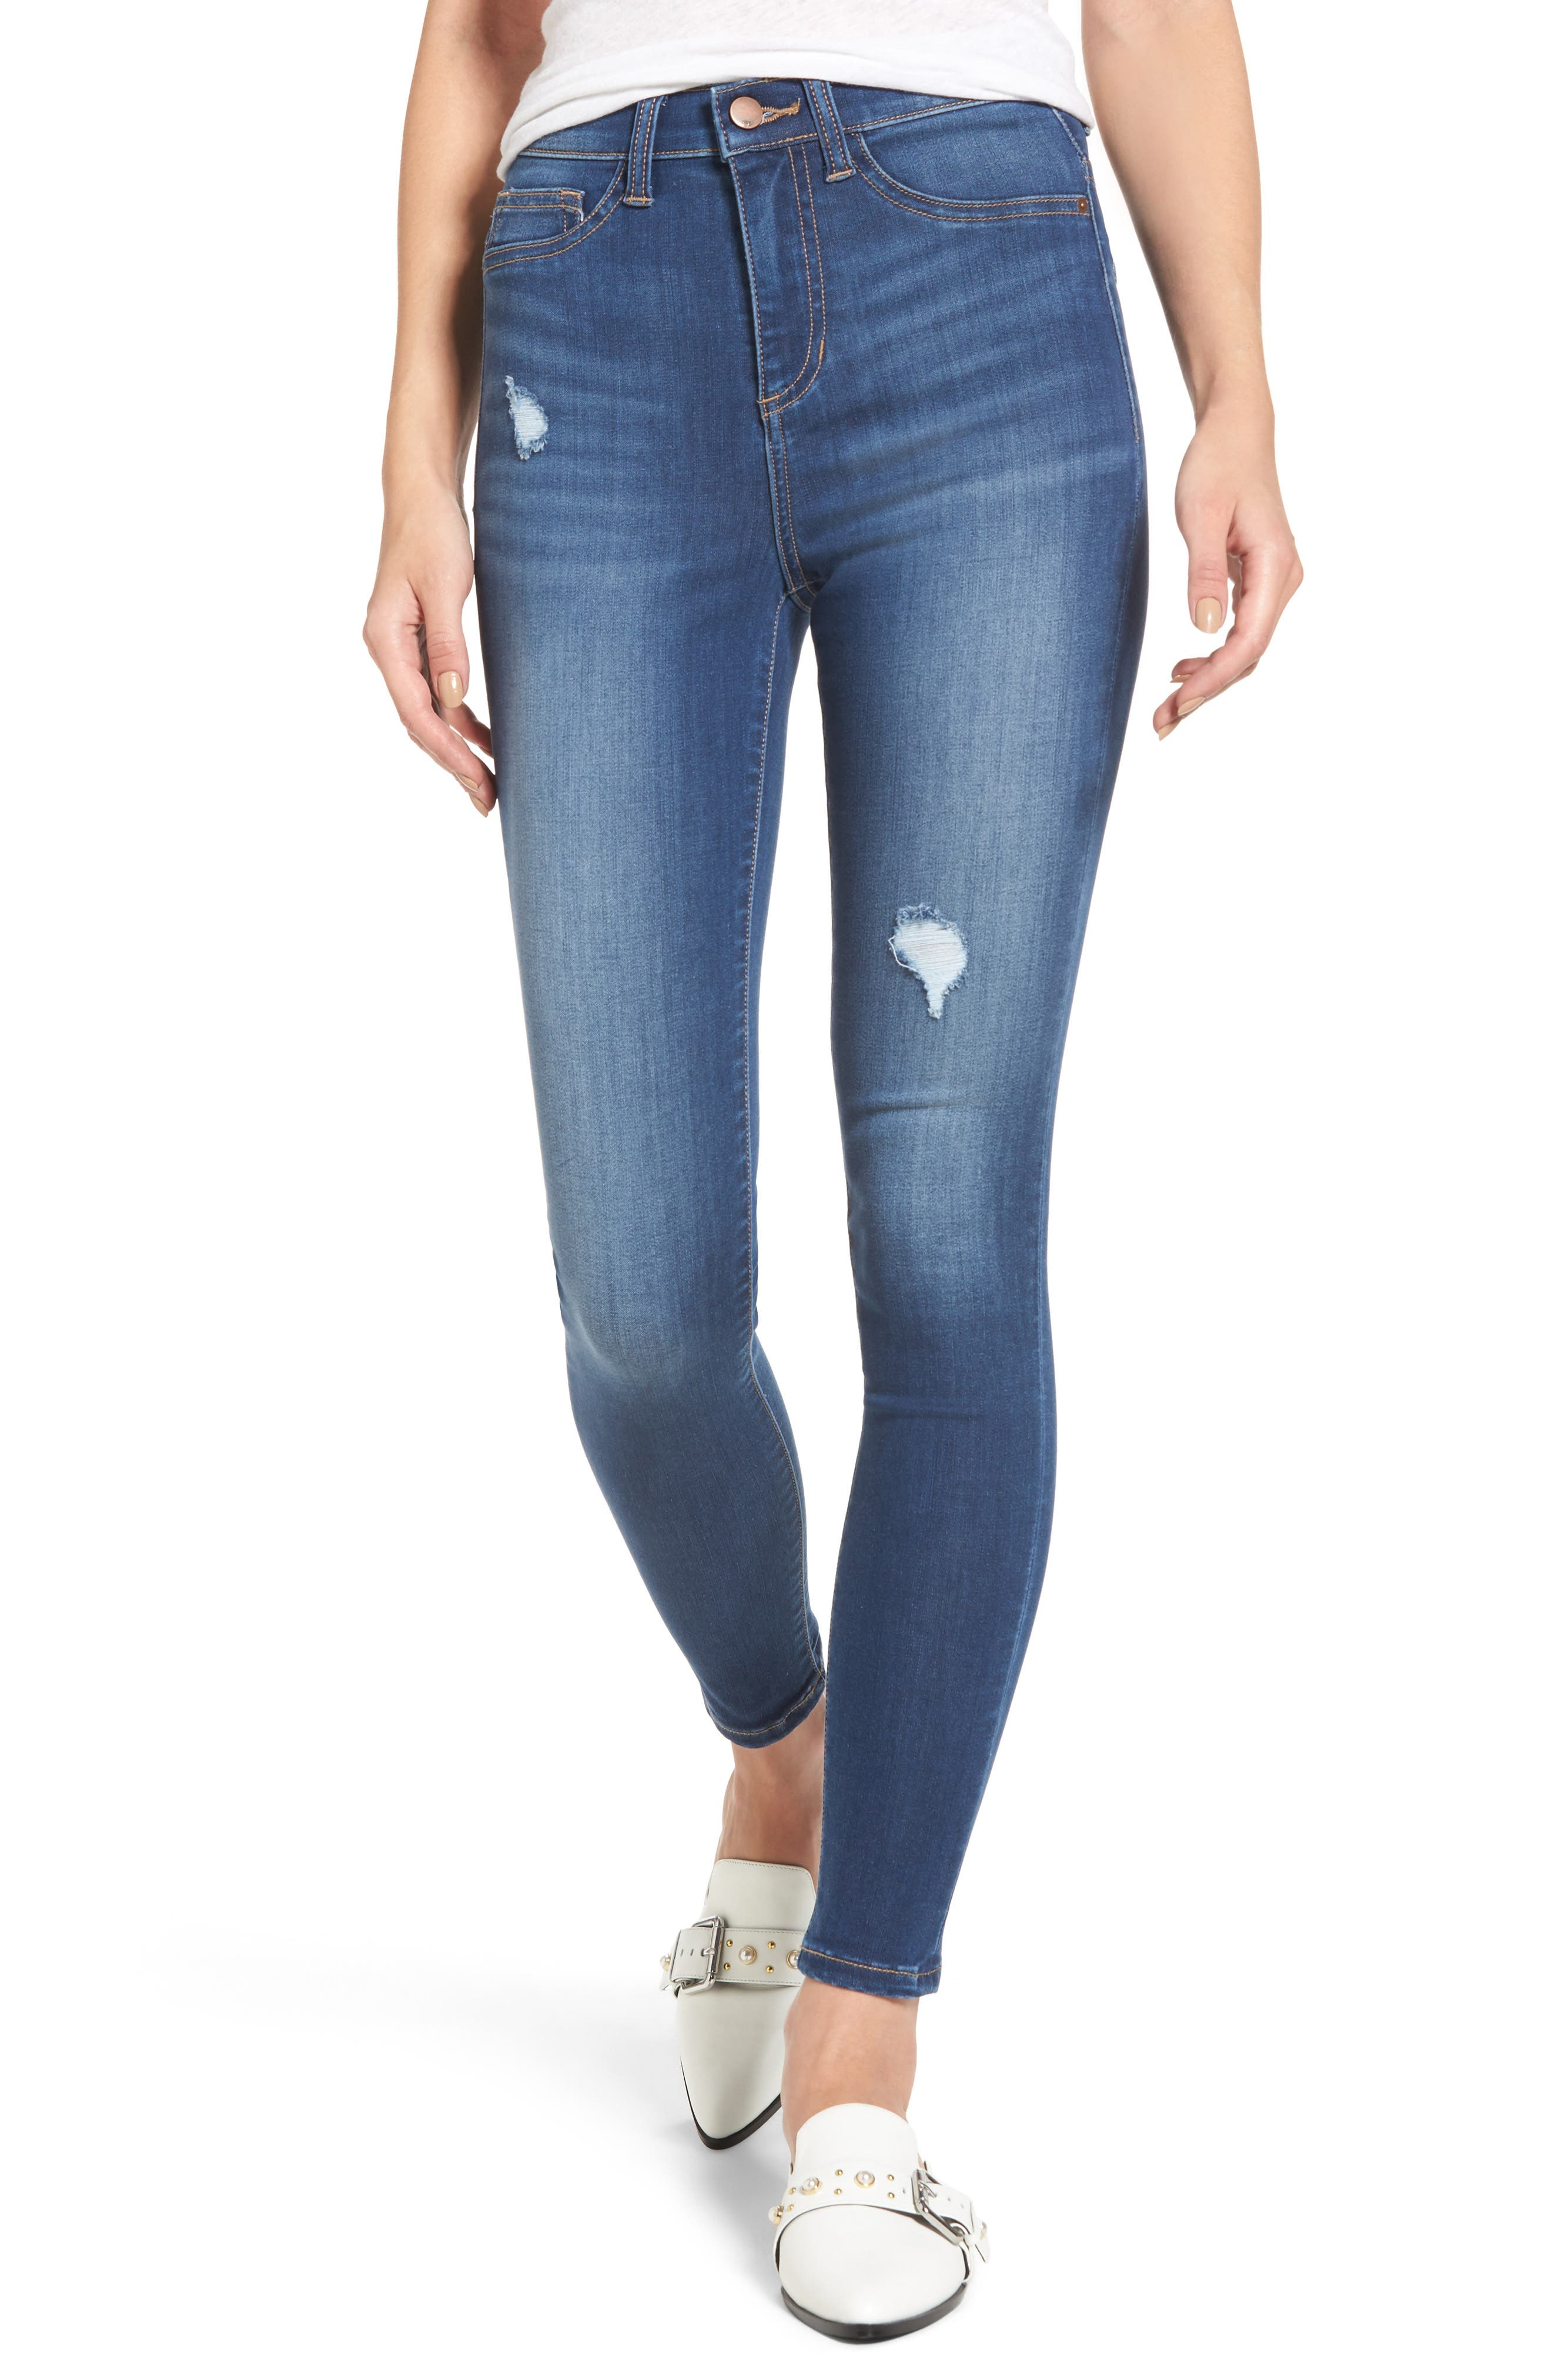 SP Black High Waist Skinny Jeans